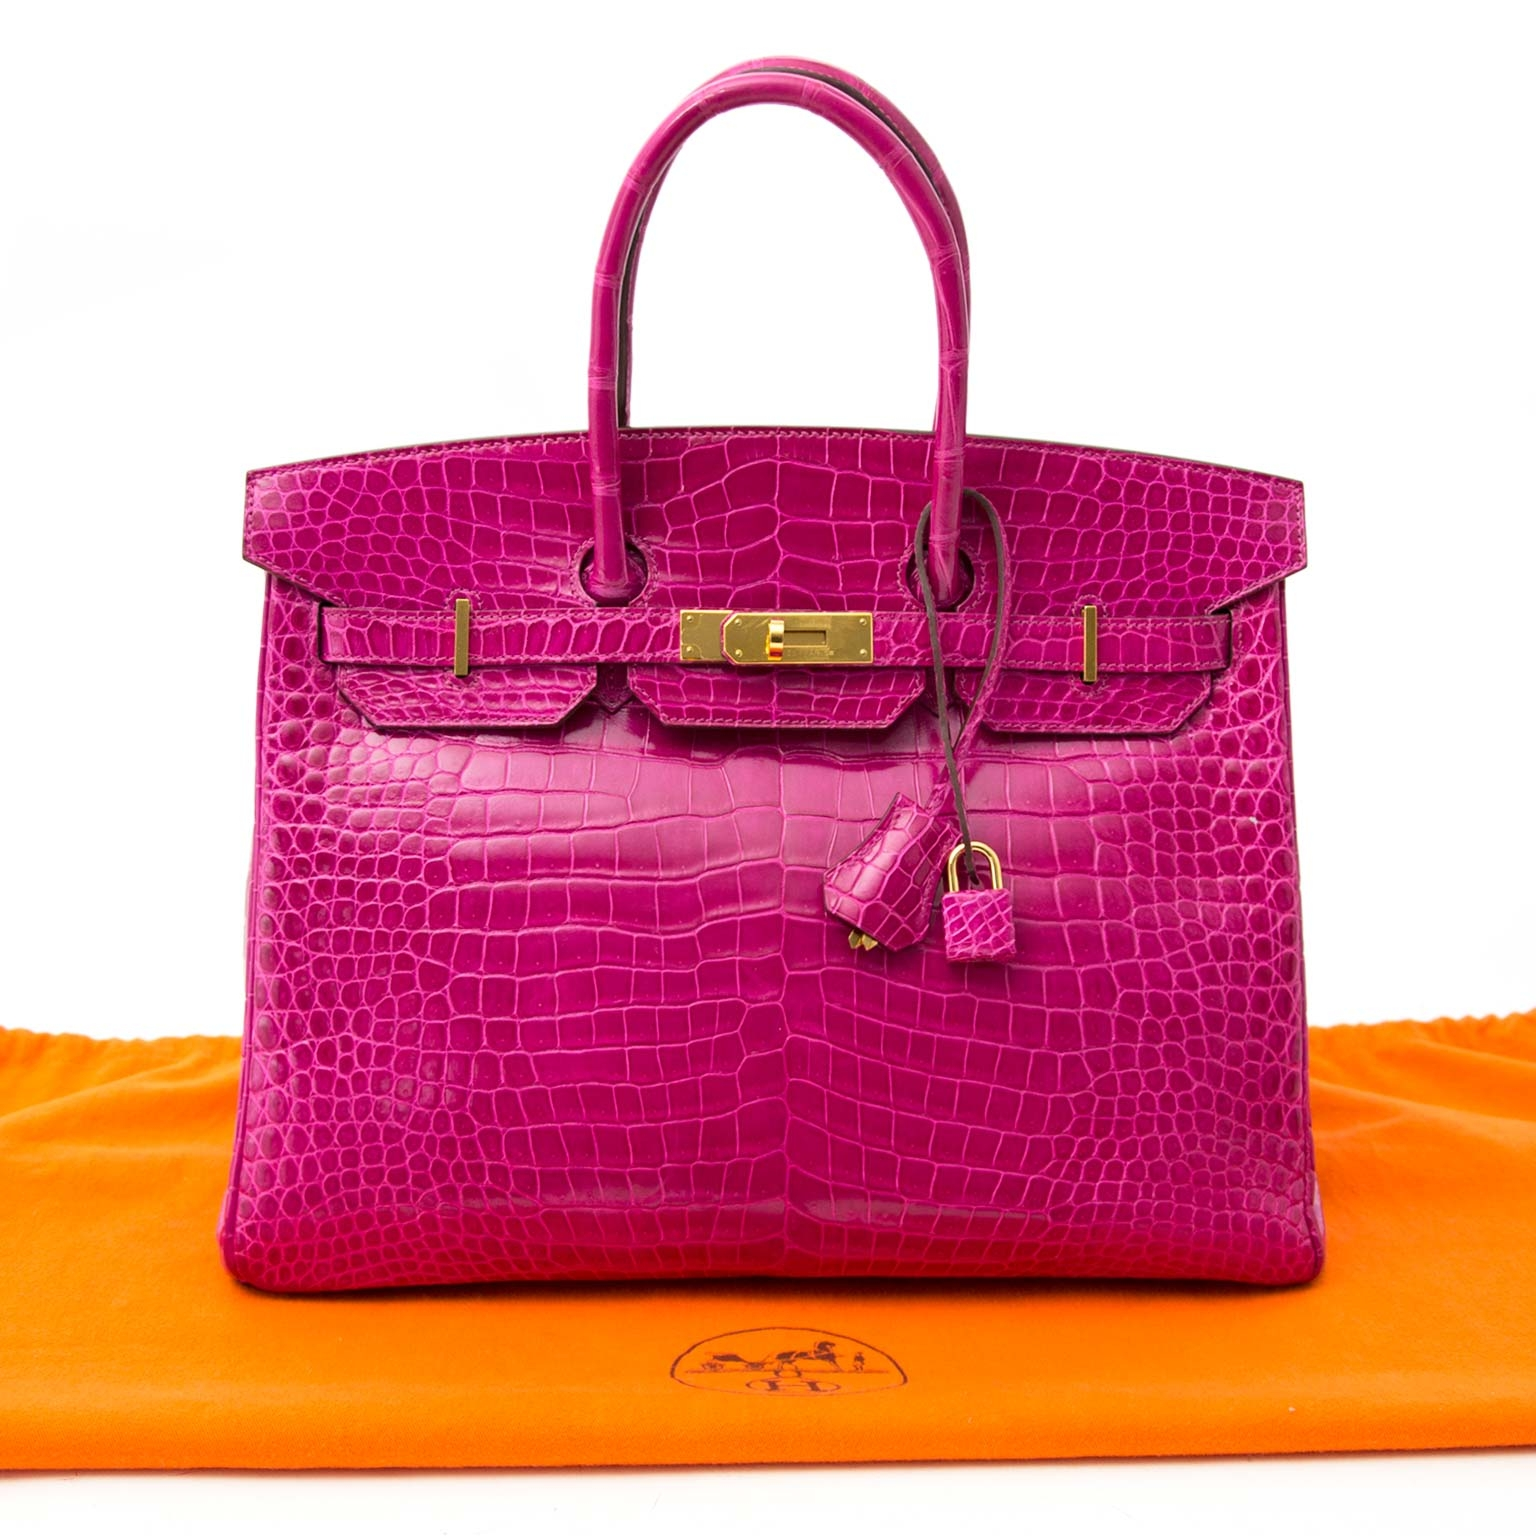 buy safe and secure online at labellov.com Hermès Birkin 35 rose sheherazade porosus ghw